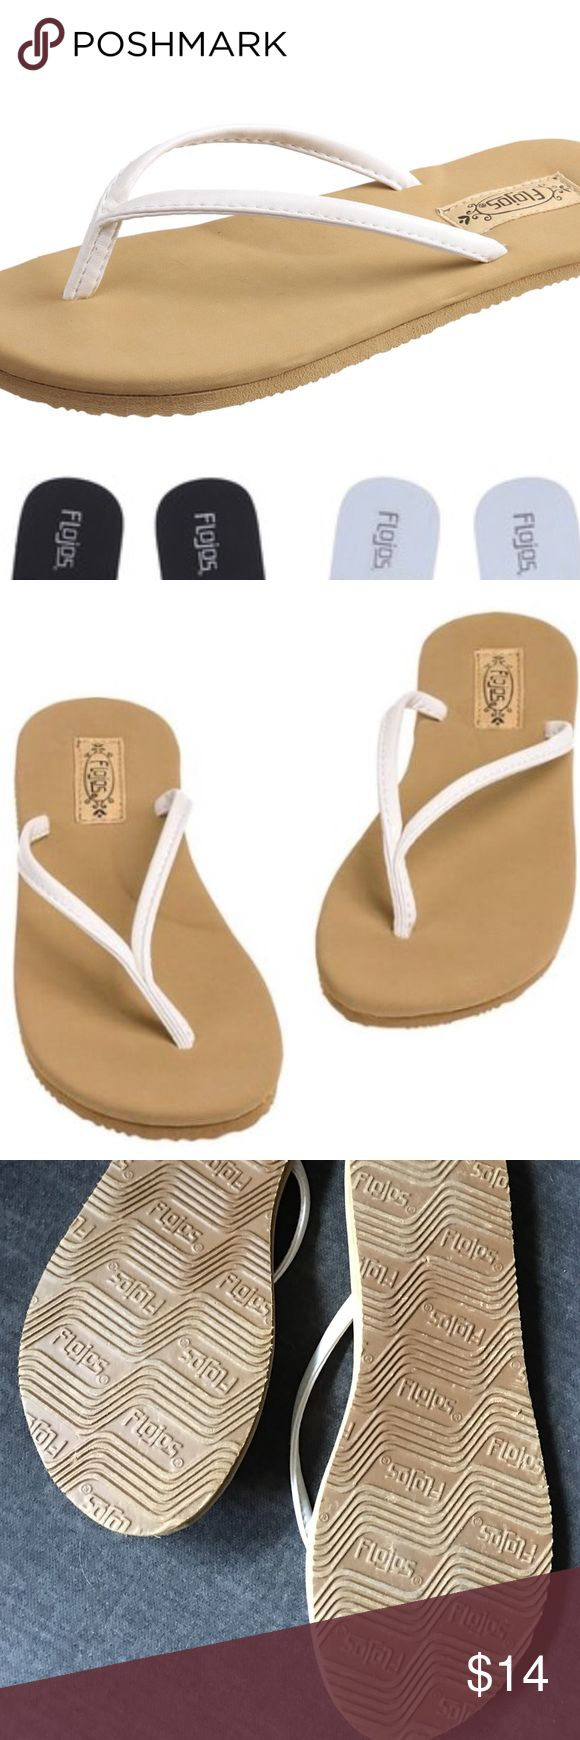 Flojos Flip Flops Get ready for the beach! Flojos flip flops provide the ultimate in comfort and versatility. Memory foam type insole. Beige/white. Size 8. I have them in almost every color but only wore the white a couple of times. Summer wardrobe staple! Comes from a smoke free home 🏡 Bundle & save! Flojos Shoes Sandals